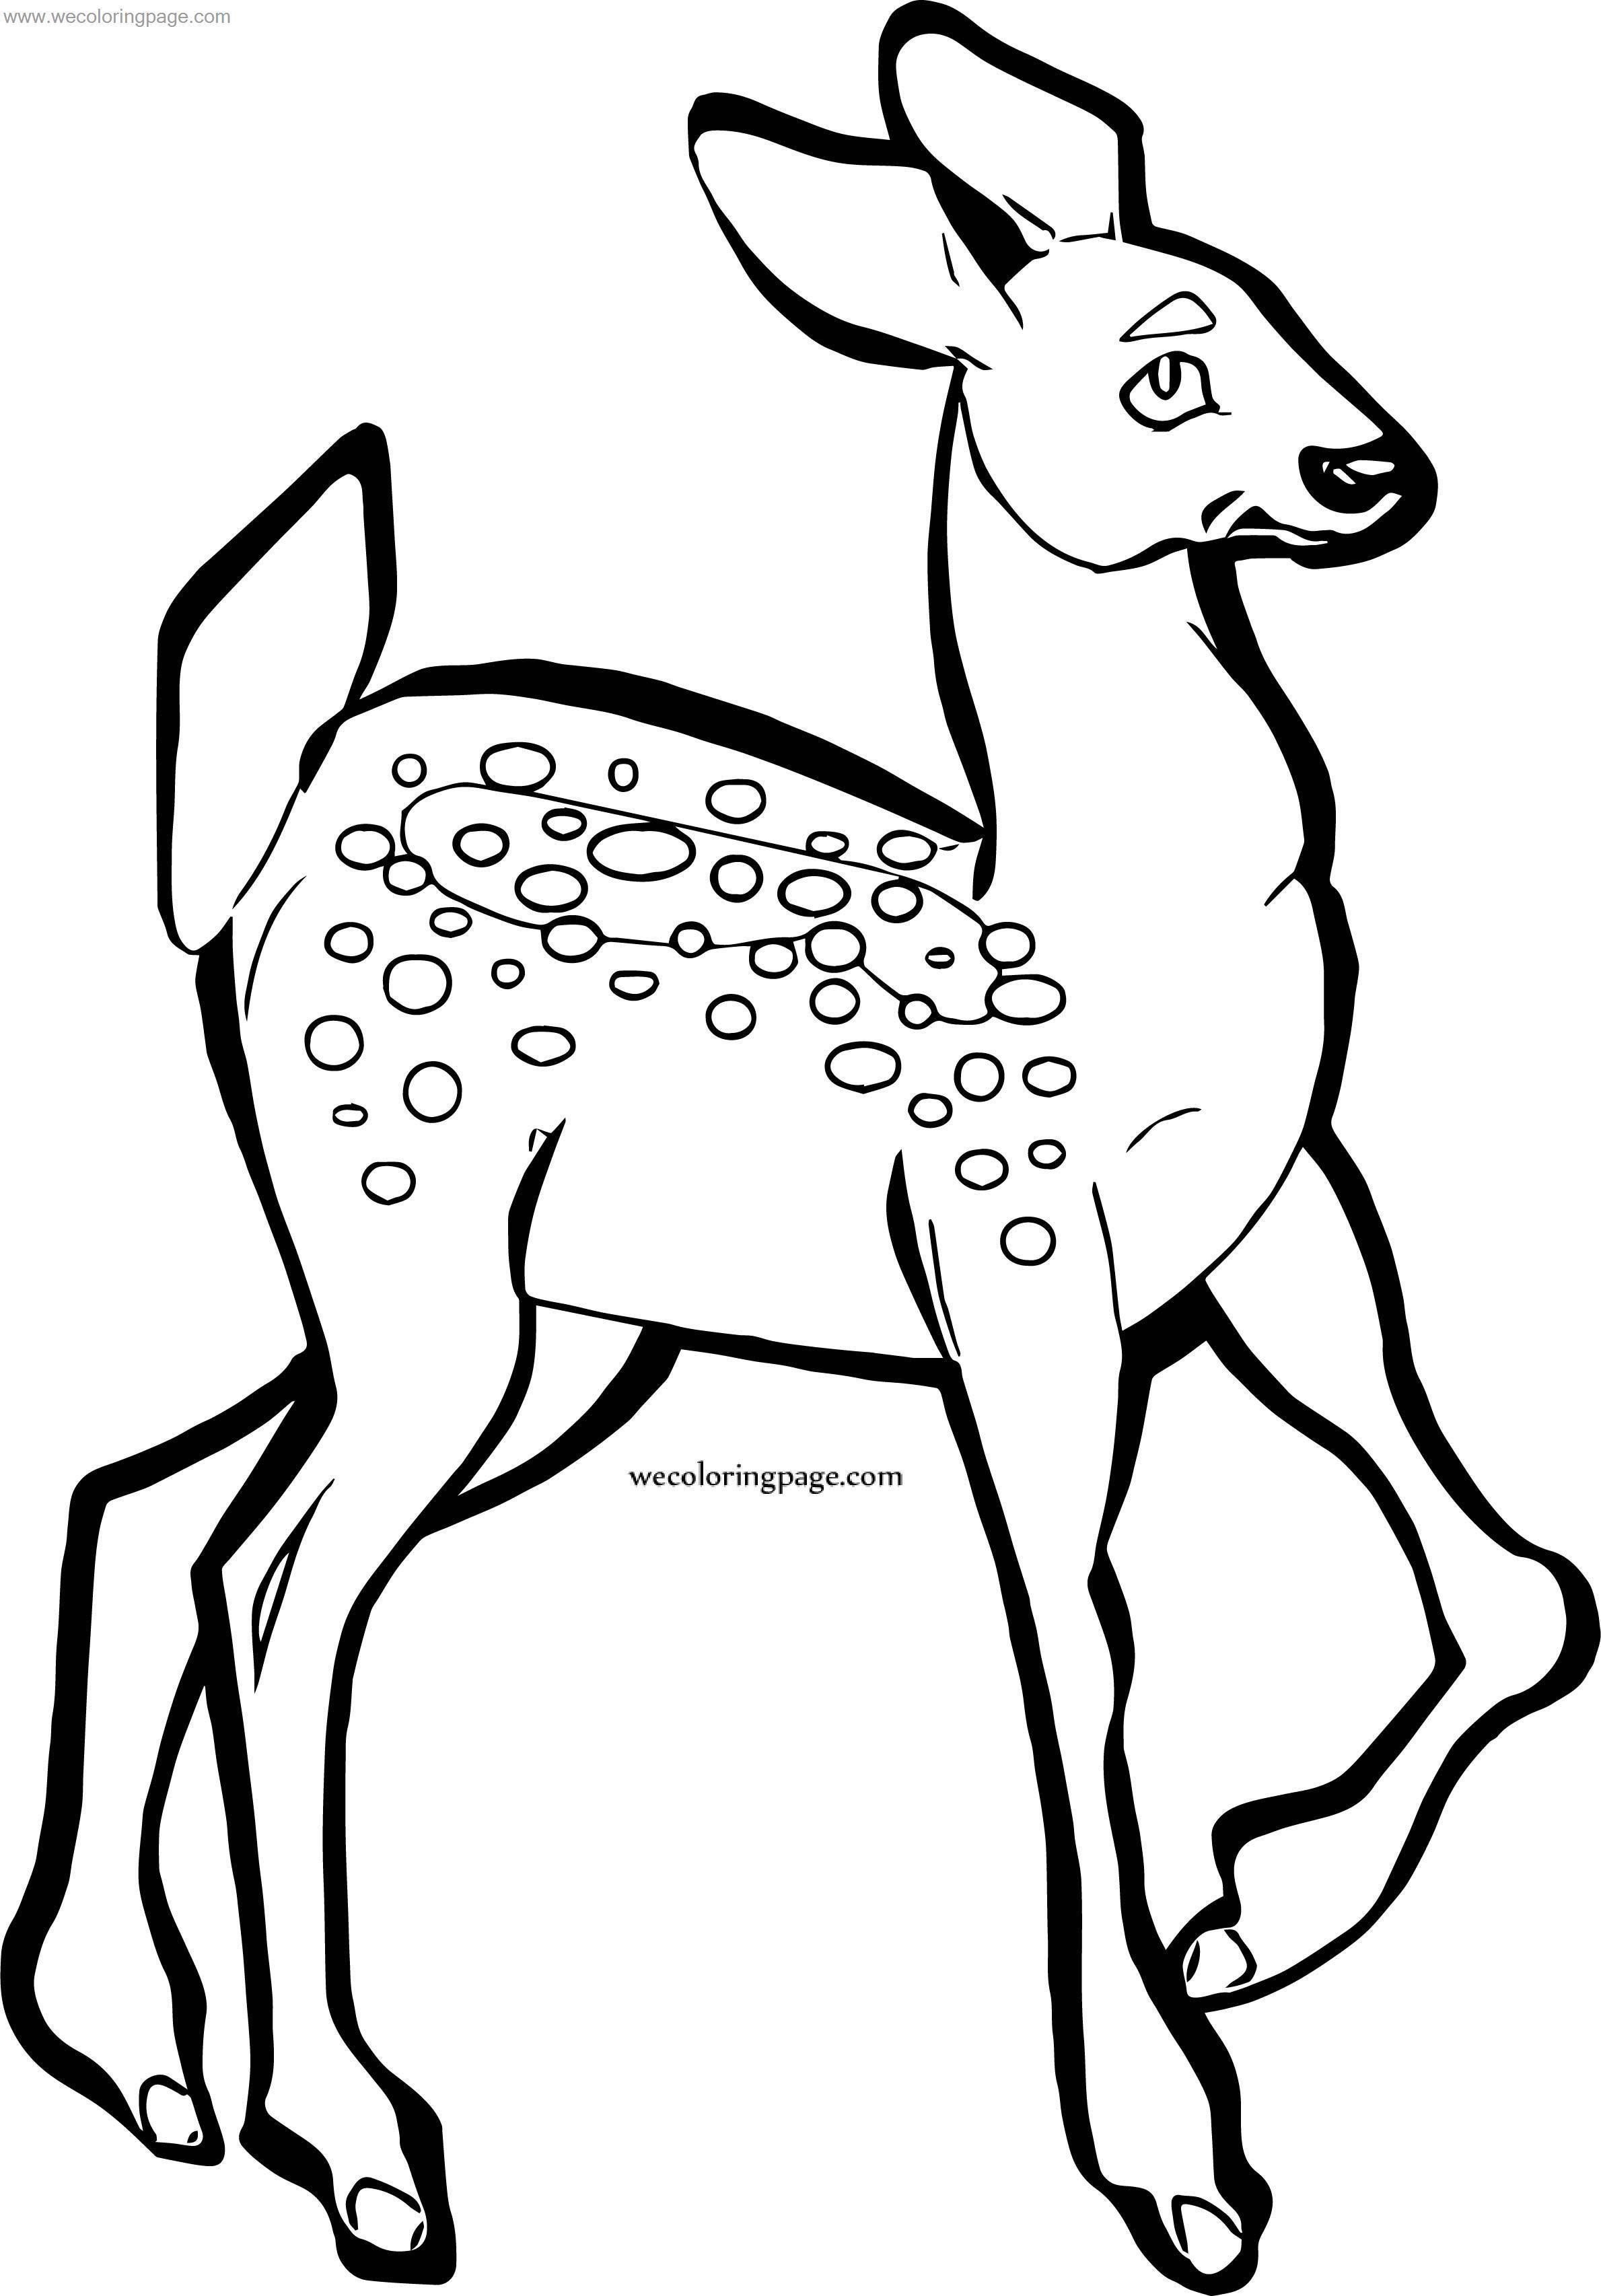 Dad Spotted Deer Coloring Page